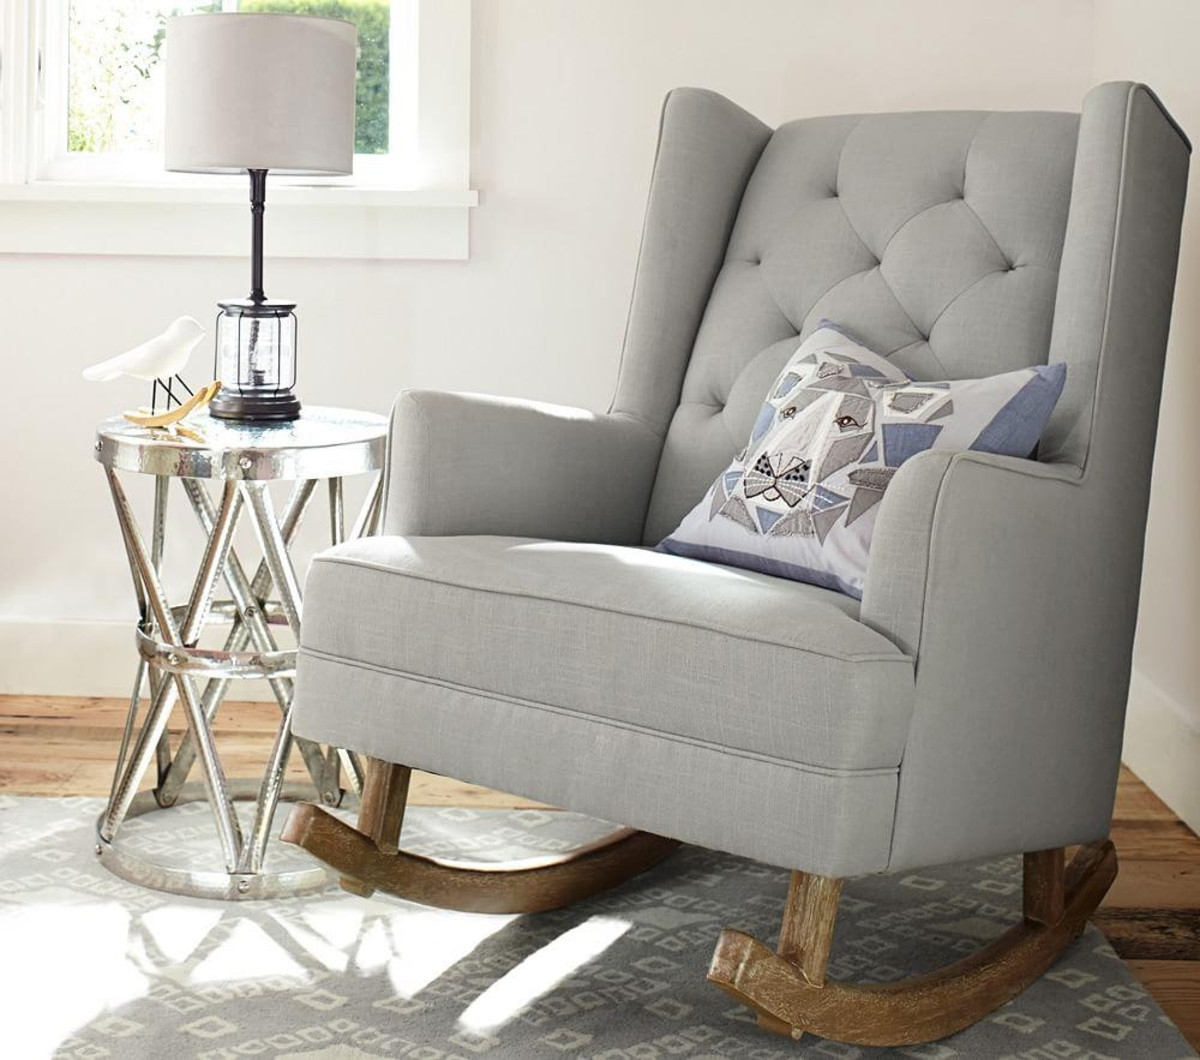 Best Cushion For Rocking Chair Ideas — All Modern Rocking Chairs In Rocking Chairs For Nursing (View 3 of 15)